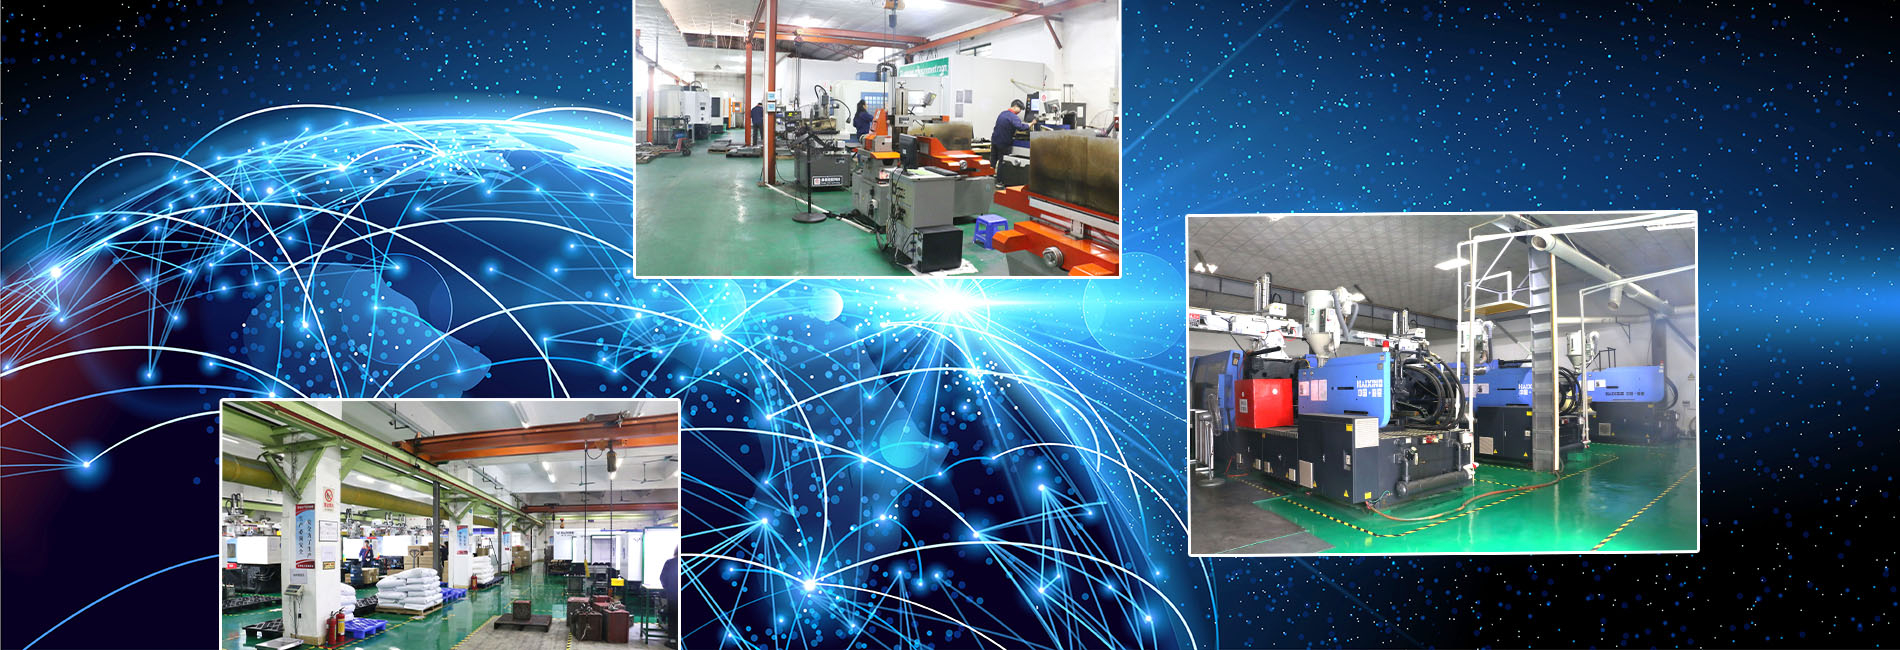 JasonMould Industrial Company Limited-Plastic Injection Molding